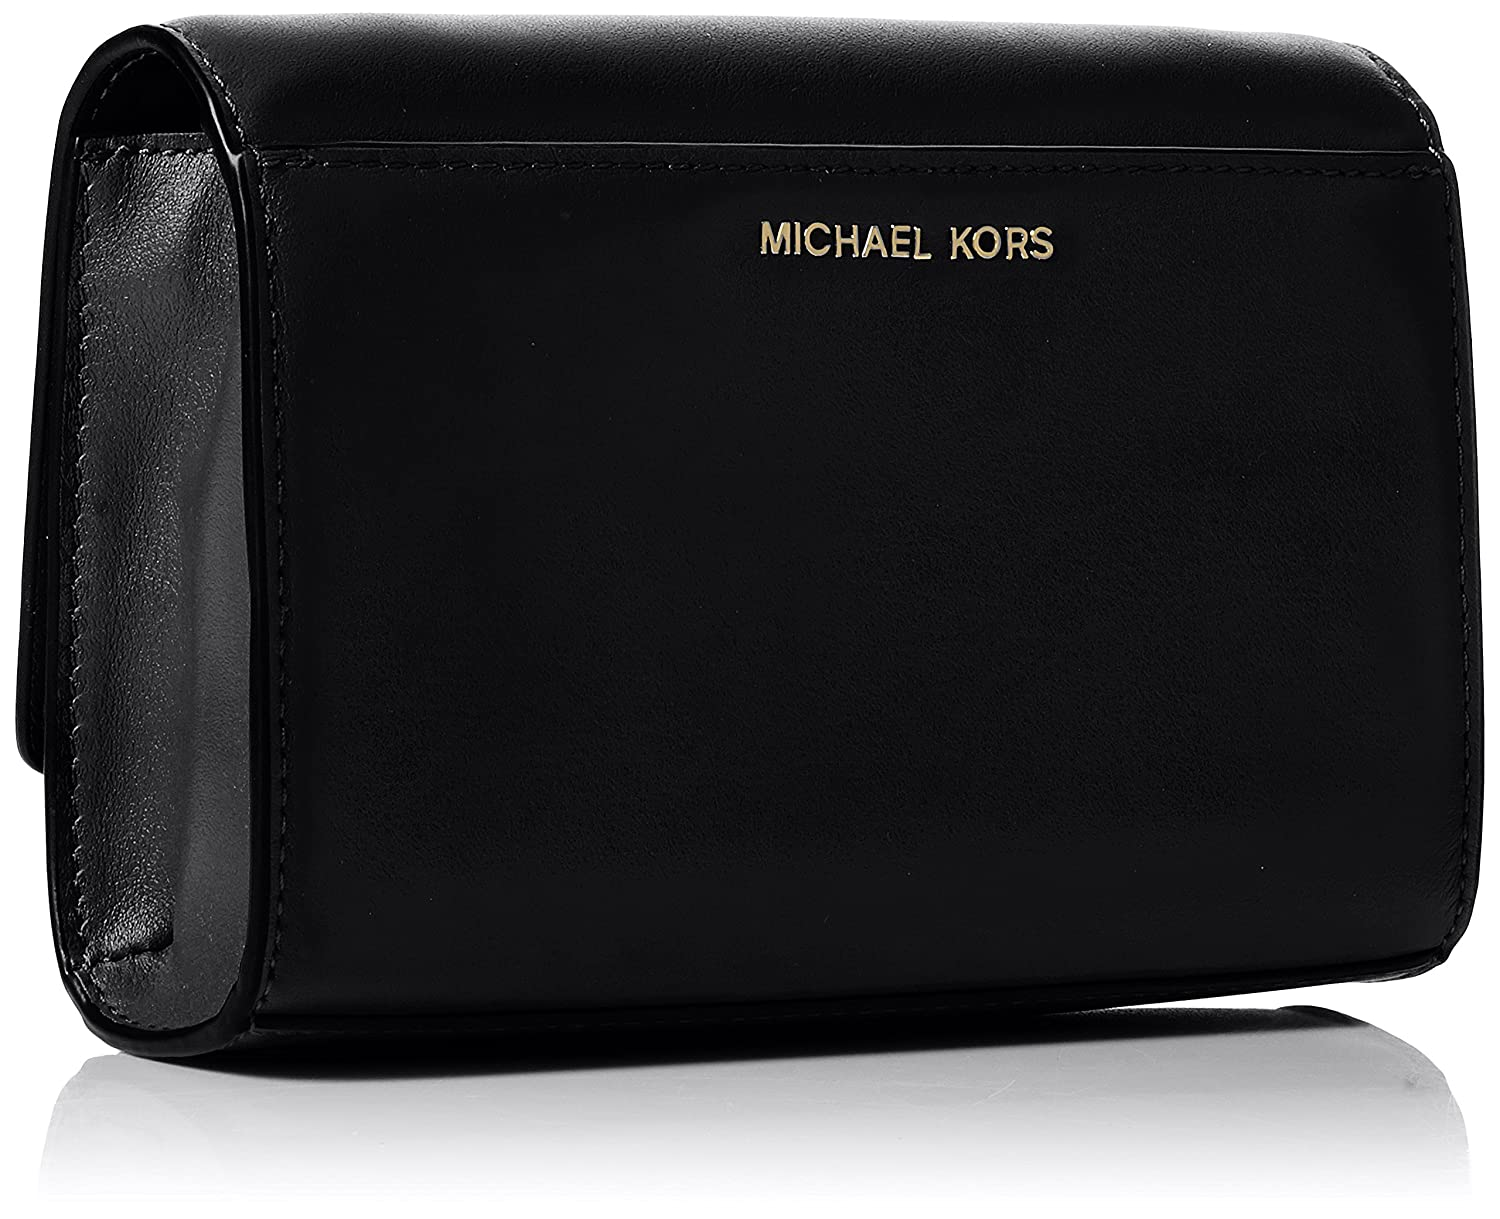 ae3527df4a4a Michael Kors Womens Ruby Clutch Black (Black) 30H7GR0C2O: Handbags:  Amazon.com